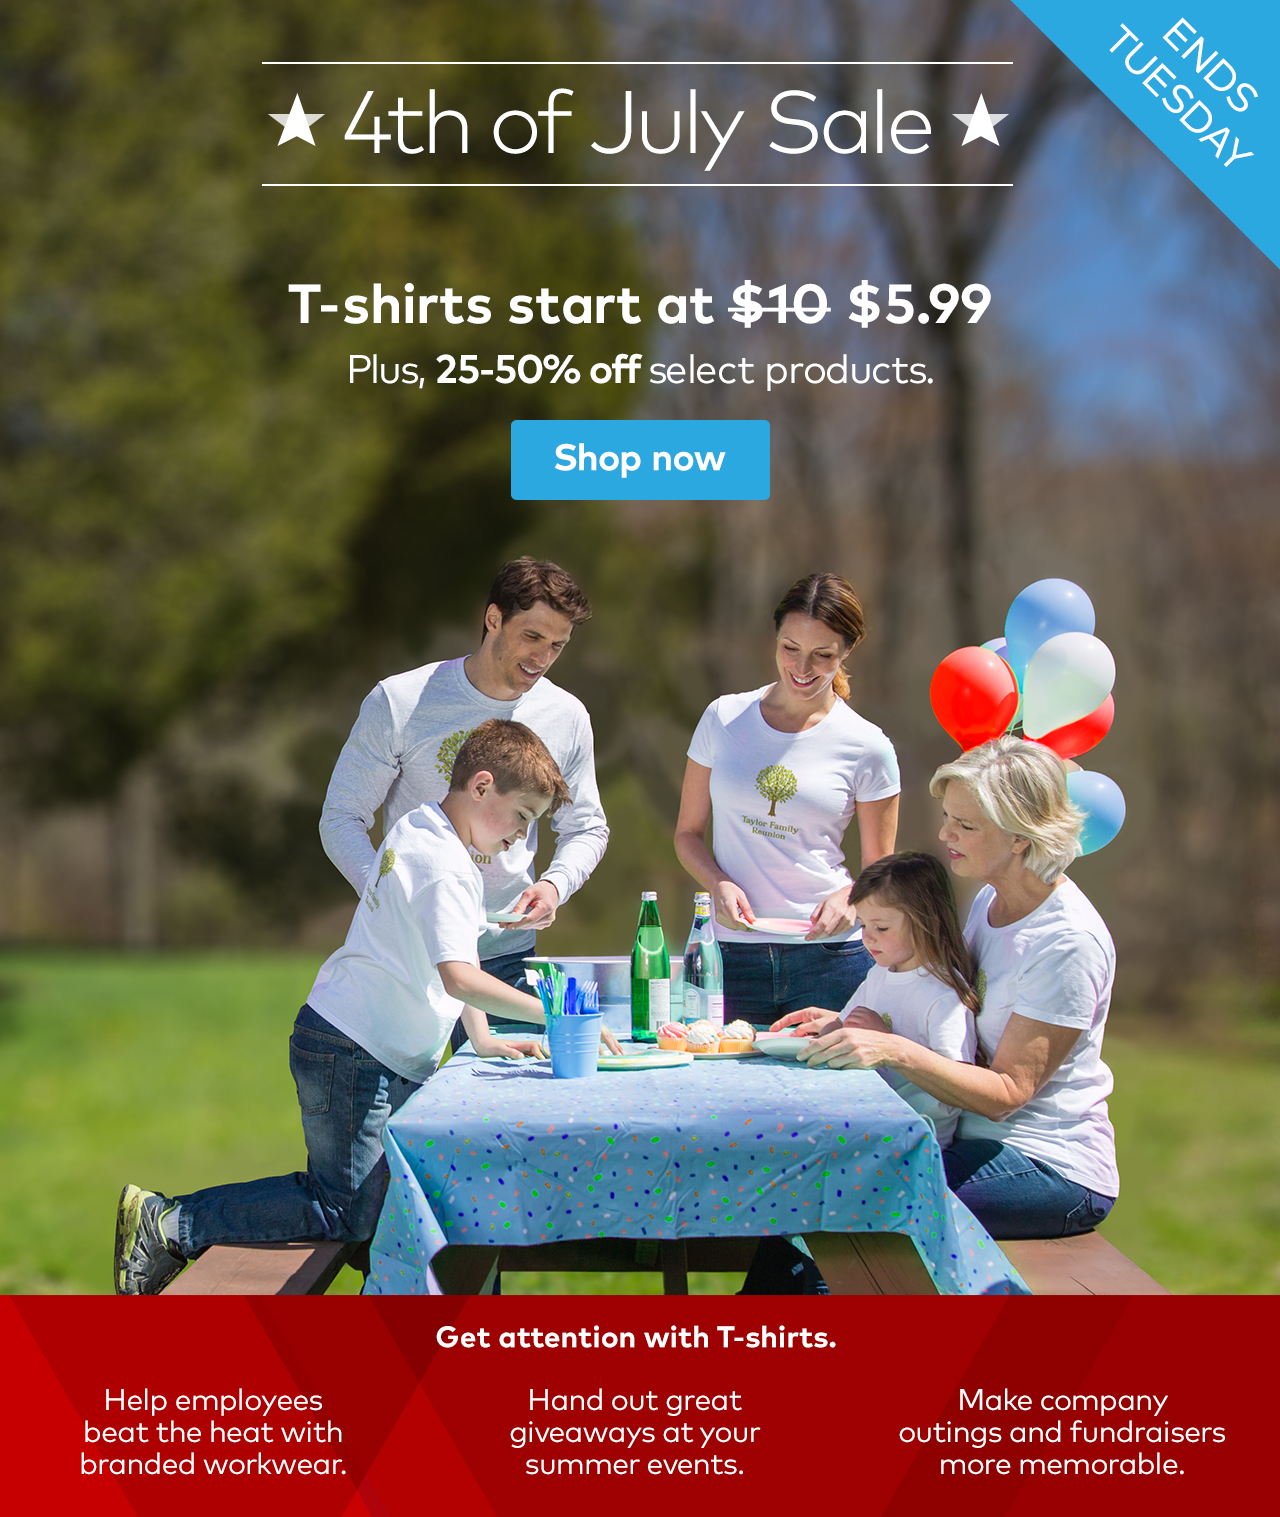 vistaprint 4th of july sale 25 50 off limited time